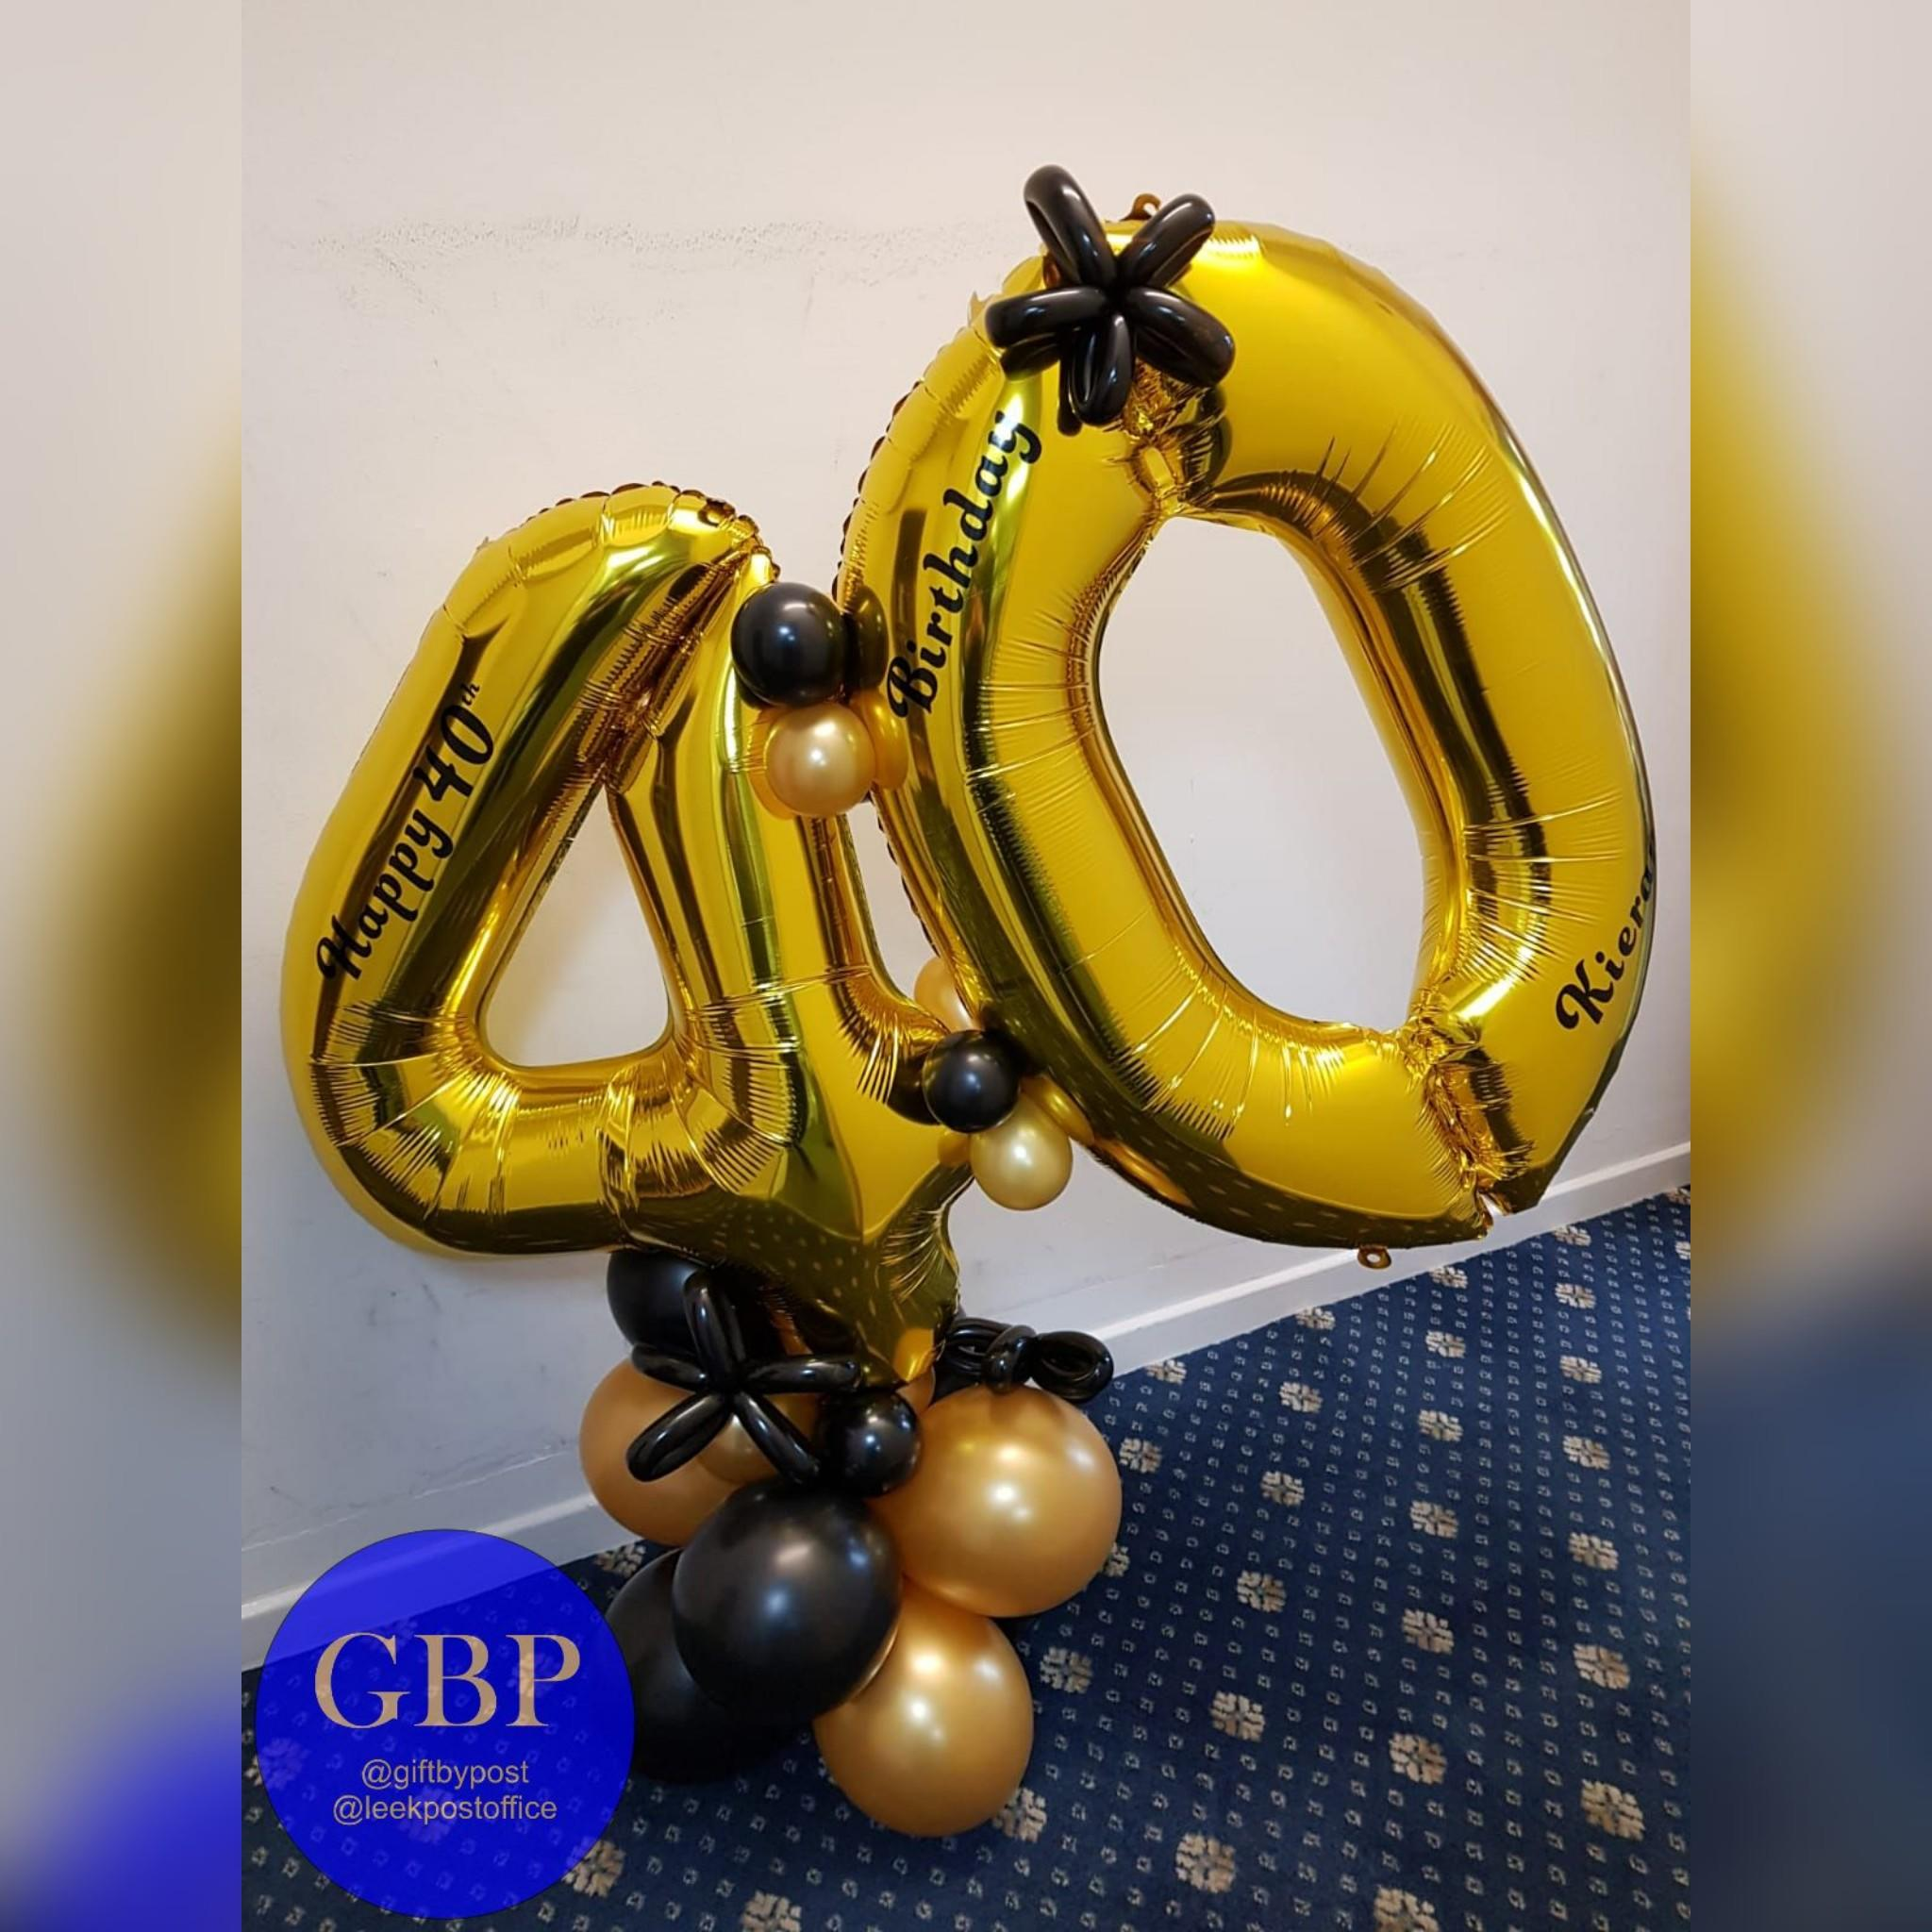 Large Numbers Balloon on a base, Age 40 Gold